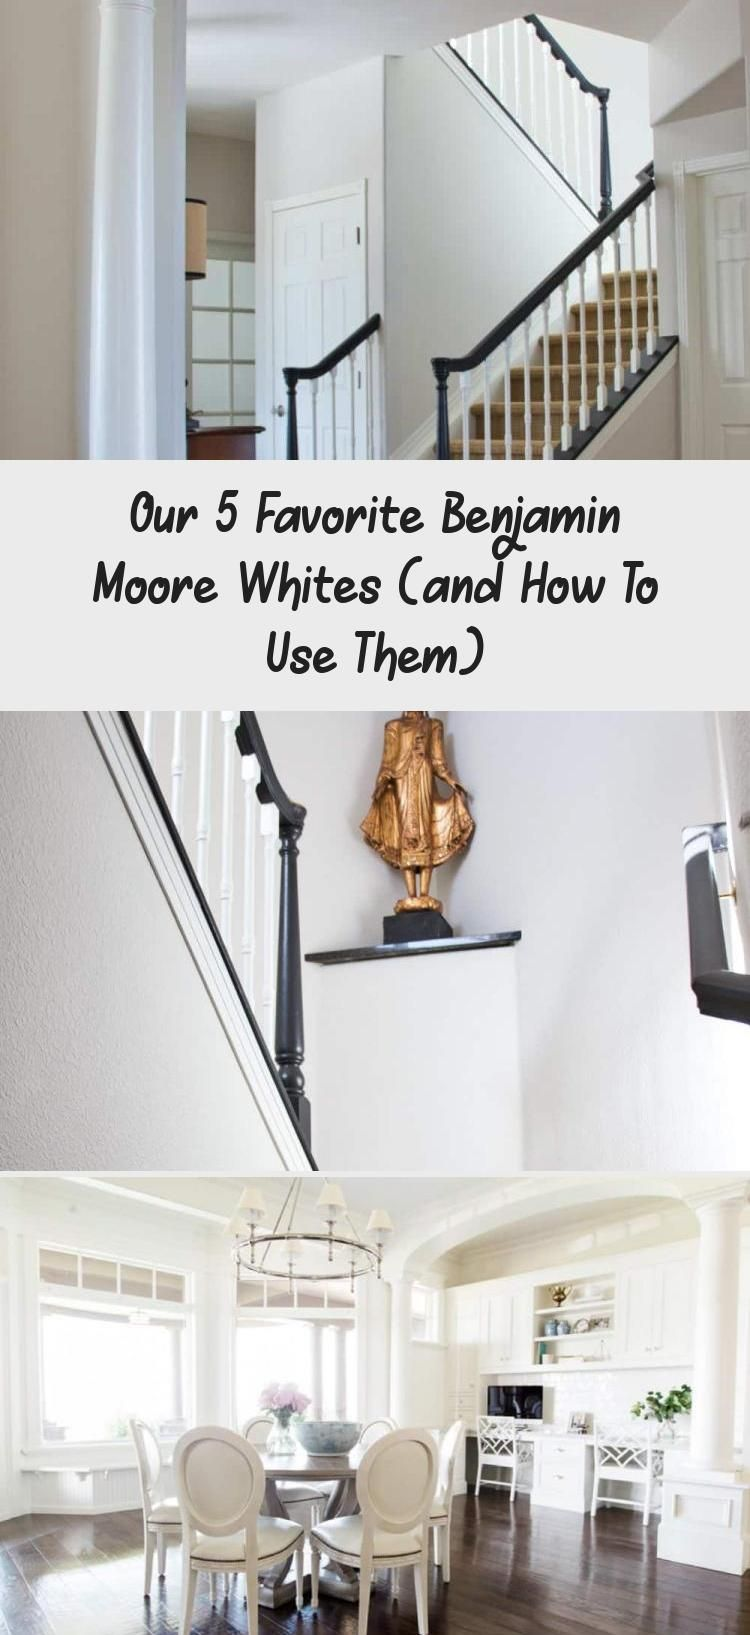 White Paint colors are the latest go-to trend.  We put together a post on our favorite Benjamin Moore white paint colors (and when to use them) with their Sherwin Williams and Behr matches. Our favorites are White Heron, Chantilly Lace, Simply White, Swiss Coffee and Classic Gray. #paintcolorideas #bestpaintcolors #whitekitchens #whitepaintcolors #whitepaint #thecolorconcierge #Benjaminmoore #sherwinwilliams #behr #thecolorconcierge #CoastalPaintColors #FarmhousePaintColors #PaintColorsWallpaper #swisscoffeebenjaminmoore